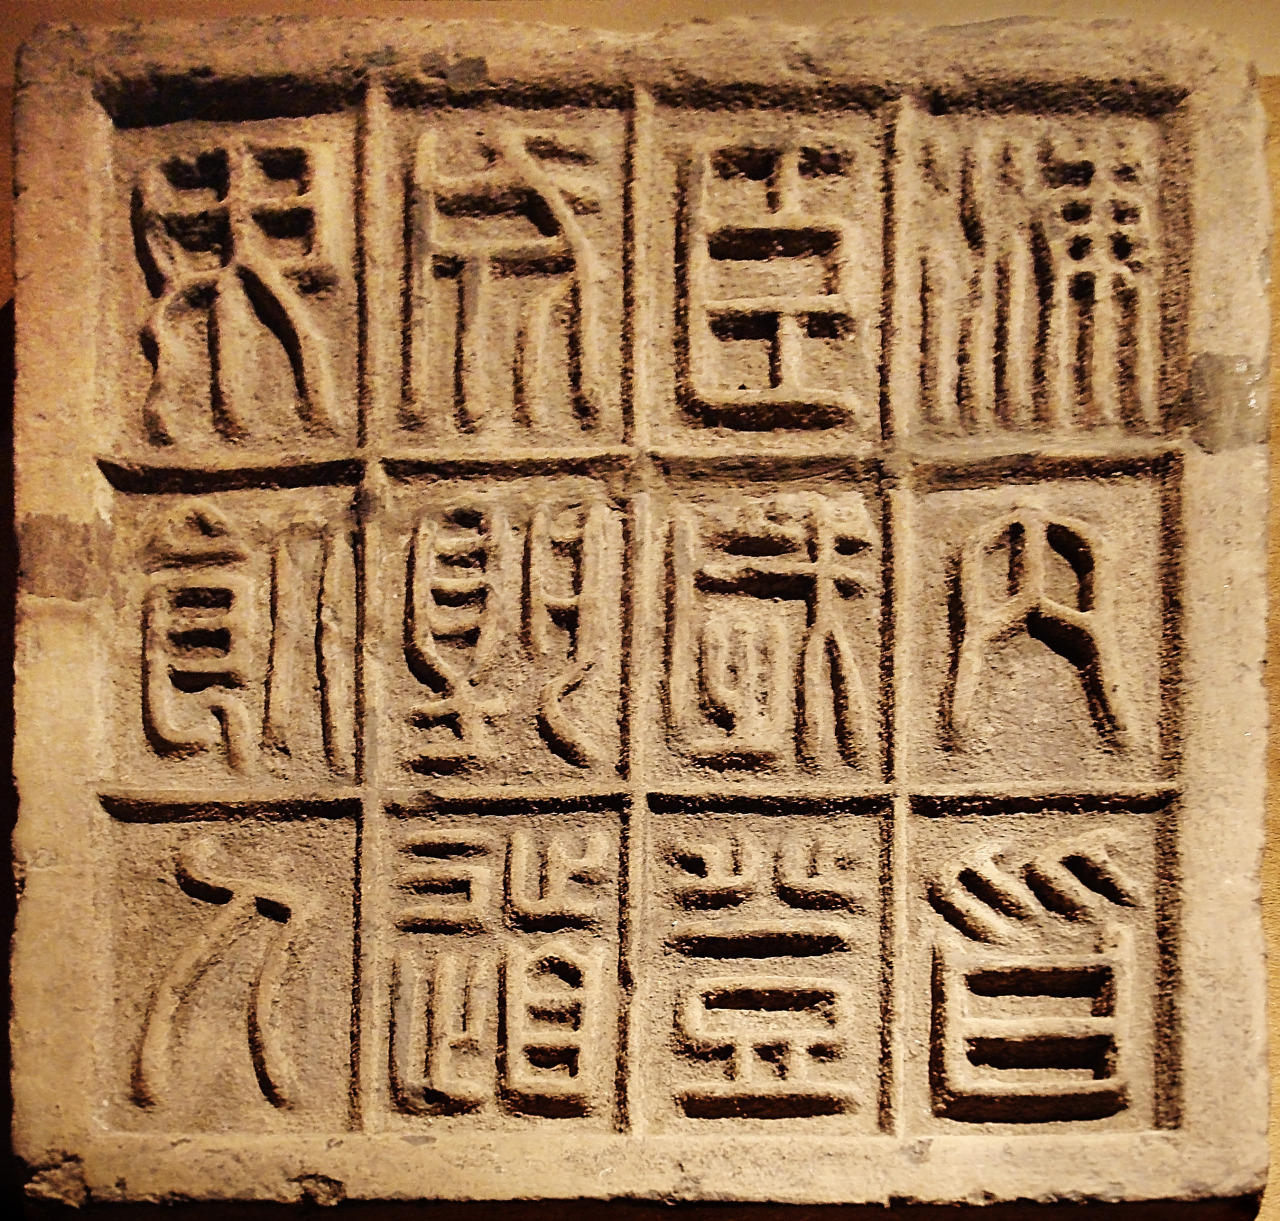 Ancient Chinese Stone slab with twelve small seal characters, Qin Dynasty (221 - 206 BC). The 12 characters on this slab of floor brick affirm that it is an auspicious moment for the First Emperor to ascend the throne, as the country is united and no men will be dying along the road. Small seal scripts were standardized by the First Emperor of China after he gained control of the country, and evolved from the larger seal scripts of previous dynasties. Photo taken by Editor at Large at the Treasures of Ancient China exhibit, Canadian Museum of Civilization.